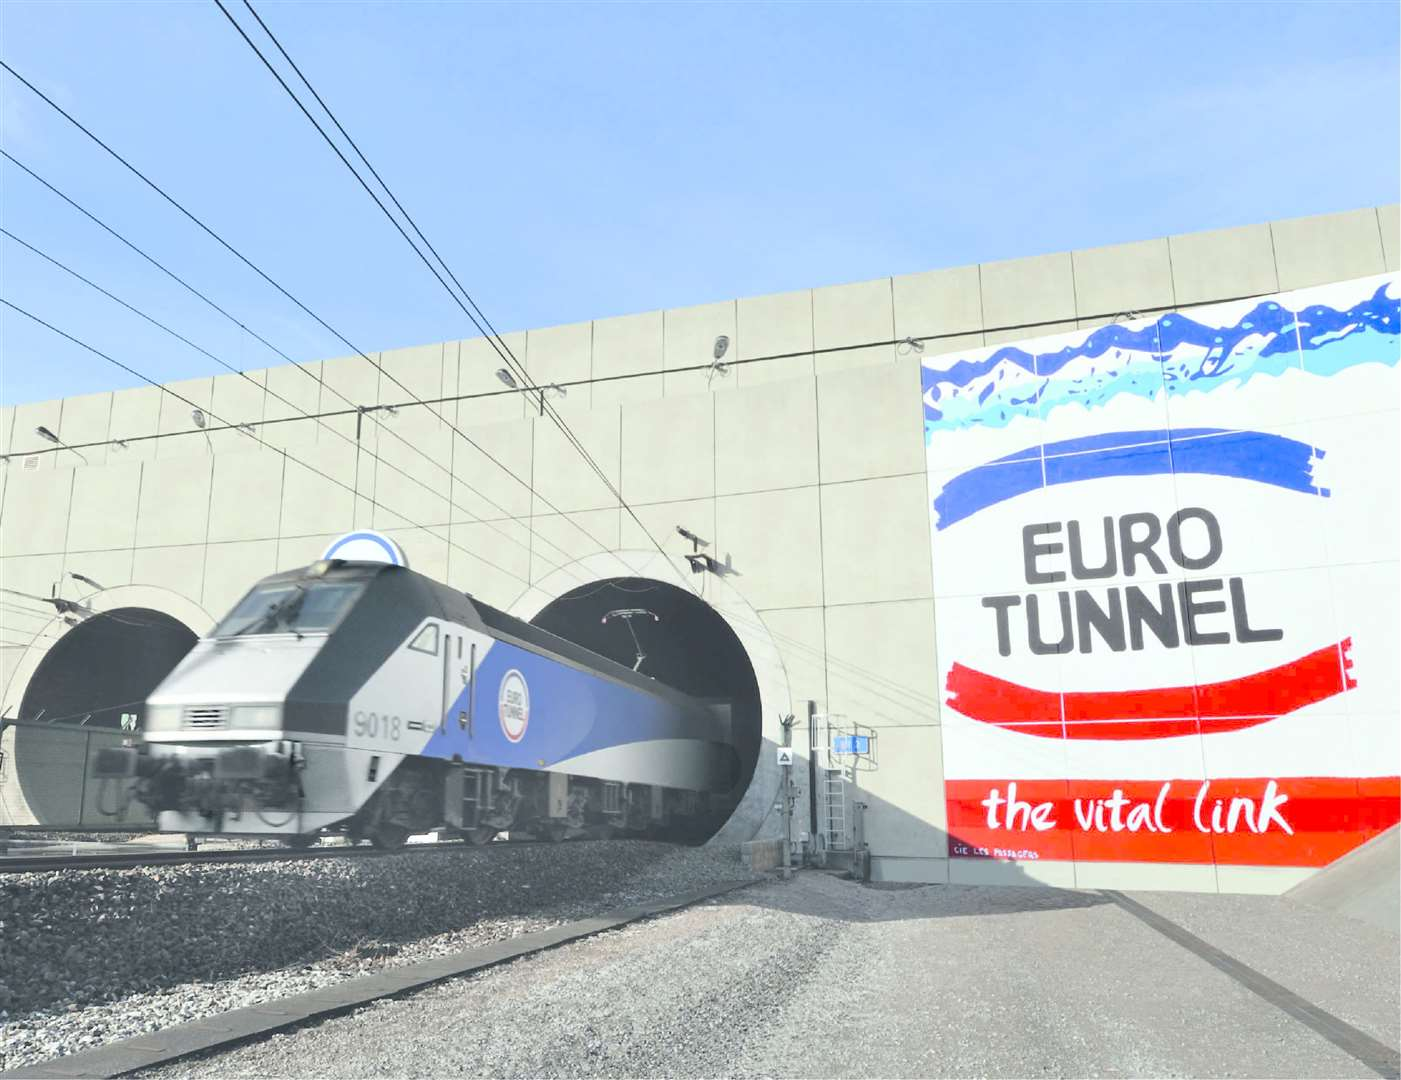 Eurotunnel hopes new CEO will continue to push its growth